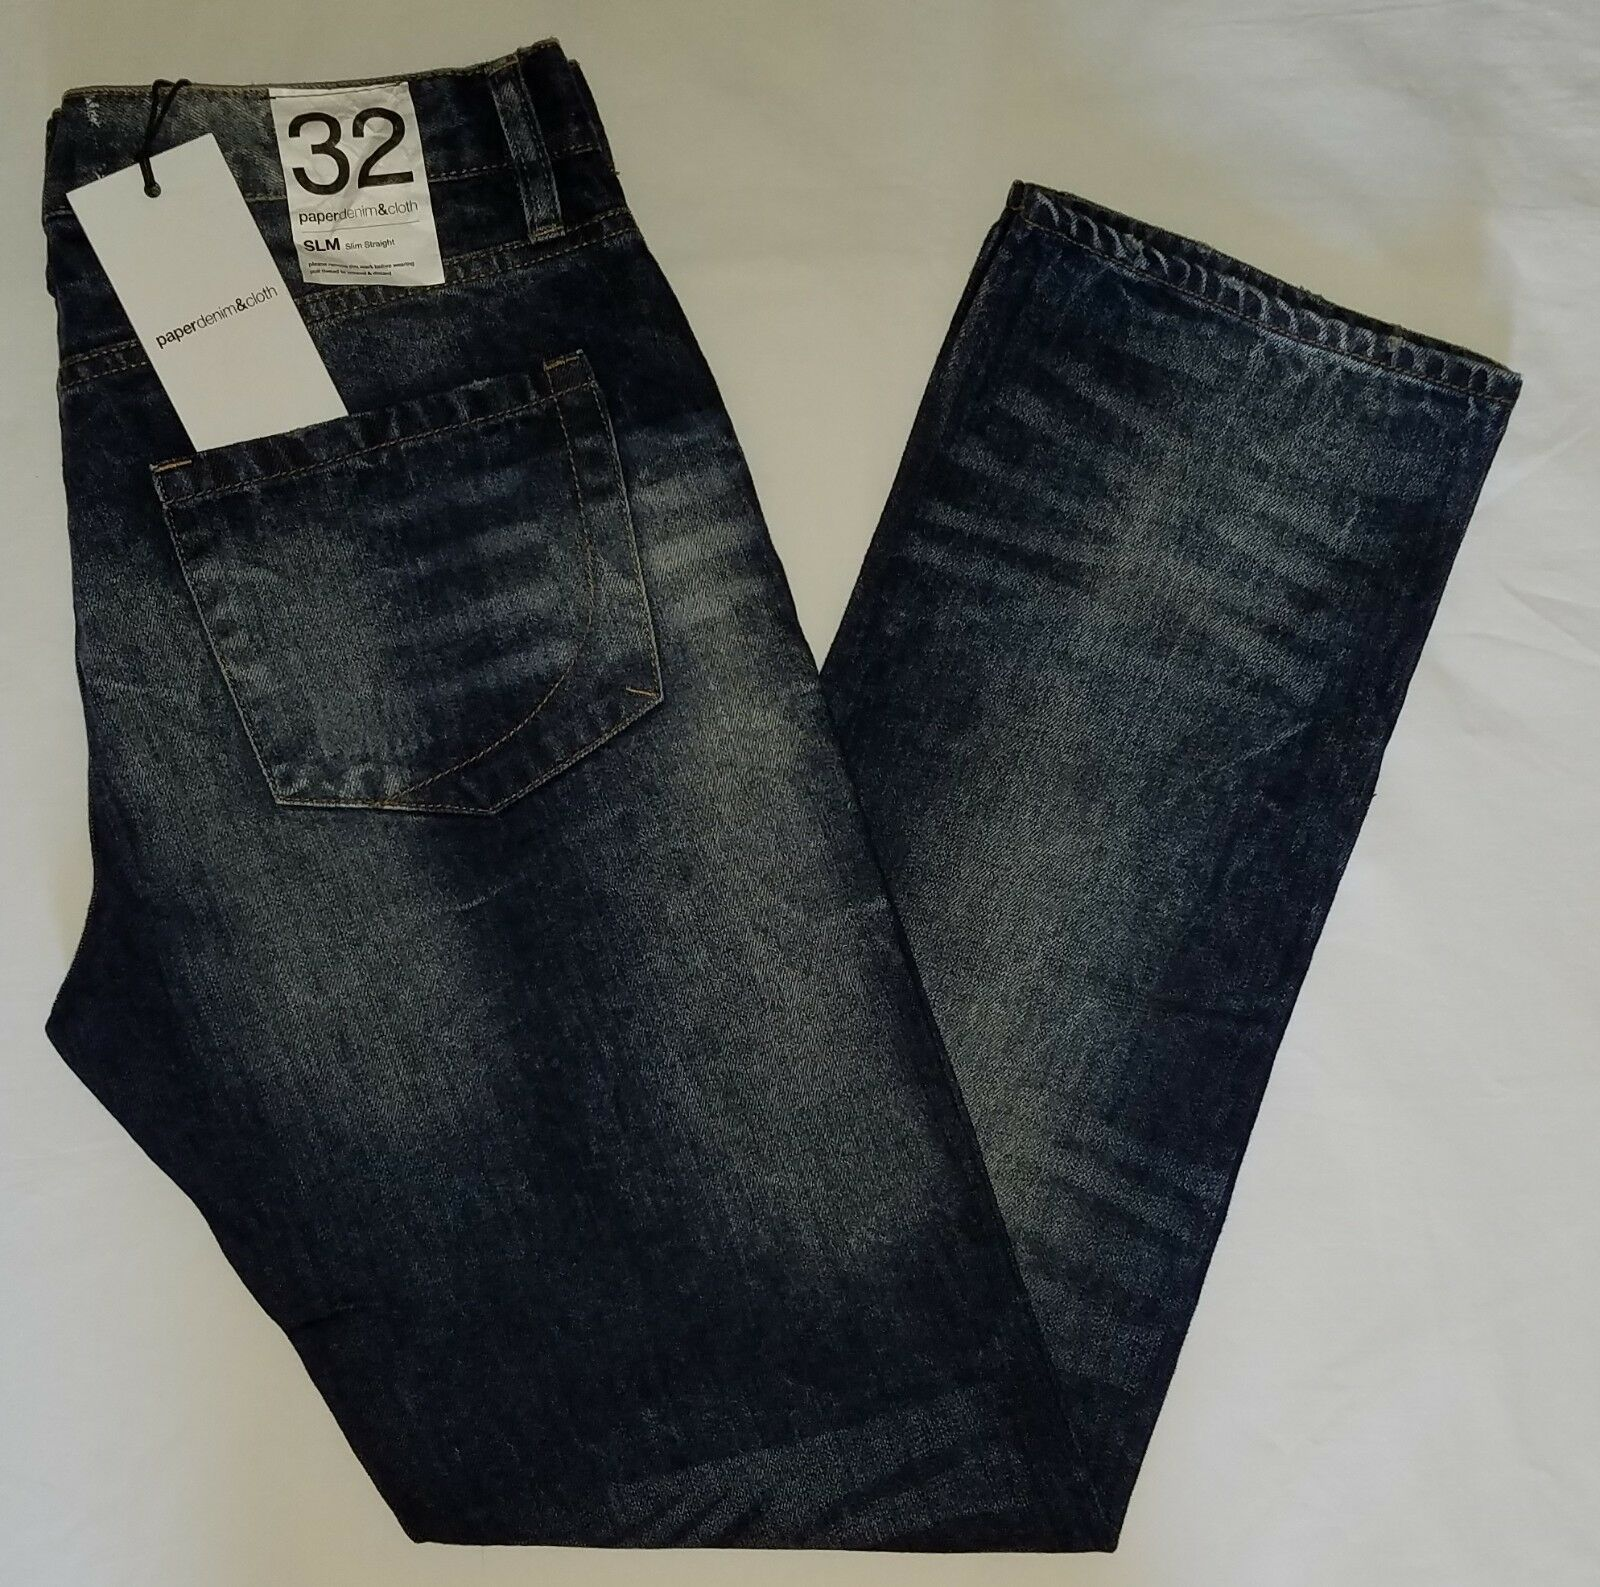 Mens NEW  paper denim&cloth slim straight leg denim jeans sz 32 32